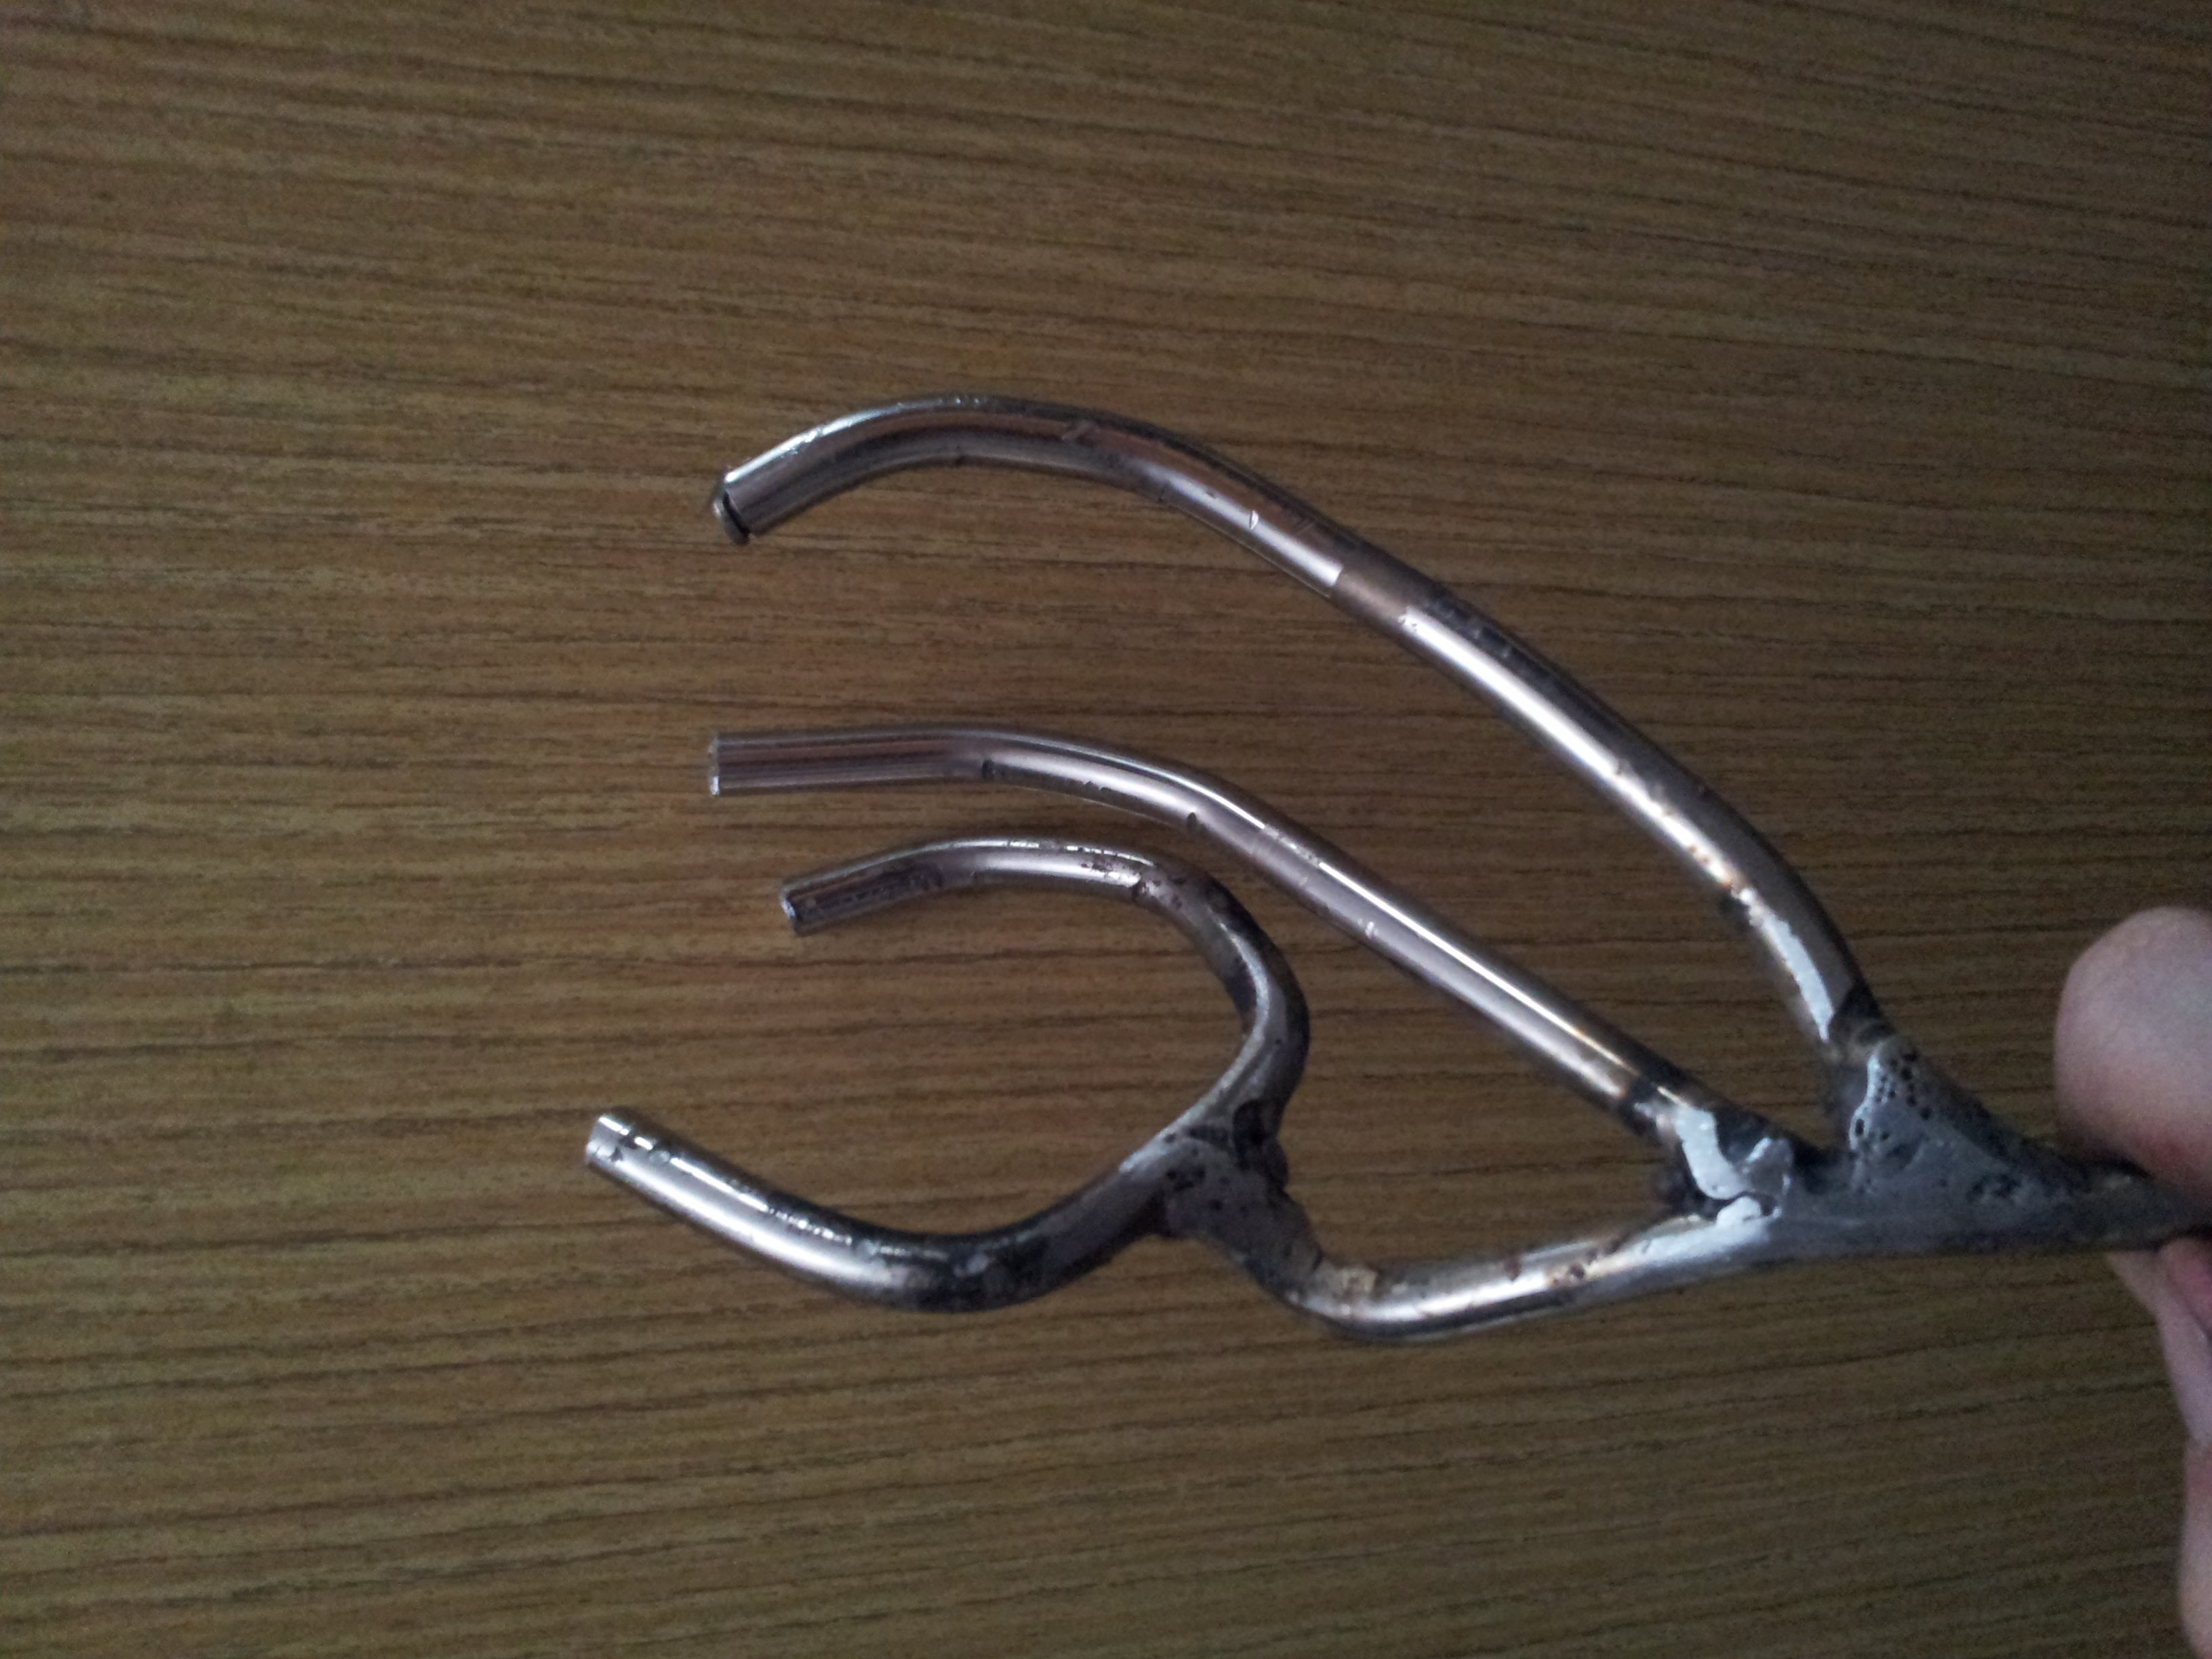 Picture of Step:3 Welding Others Fingers